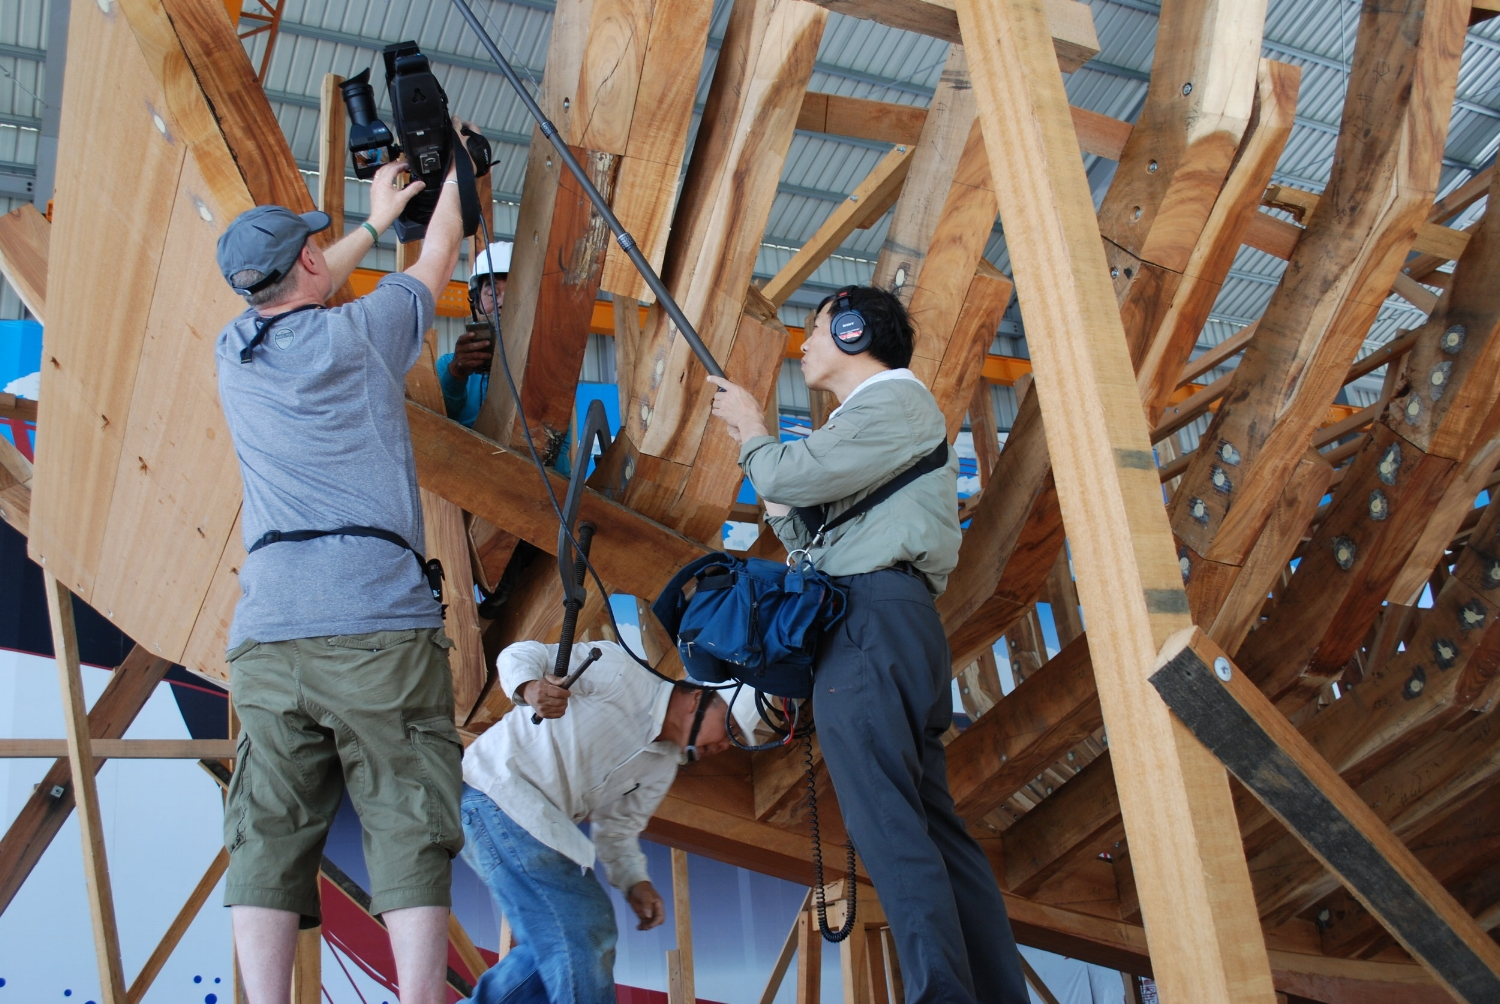 Marc Pingry and Johnson Hu, shooting the junk reconstruction in Tainan, Taiwan